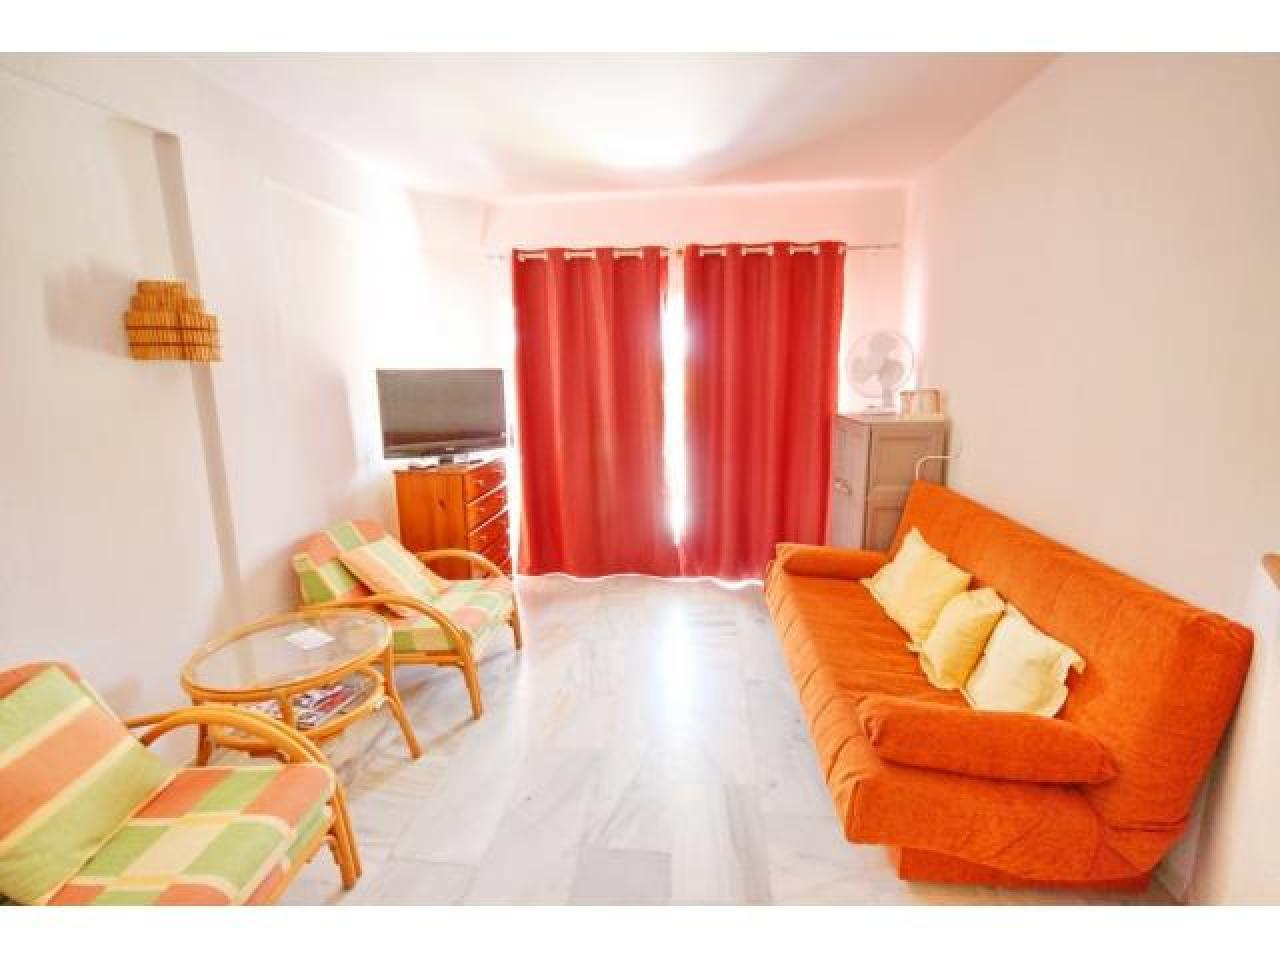 Apartment in Tenerife for rent and sale » #879 - 3